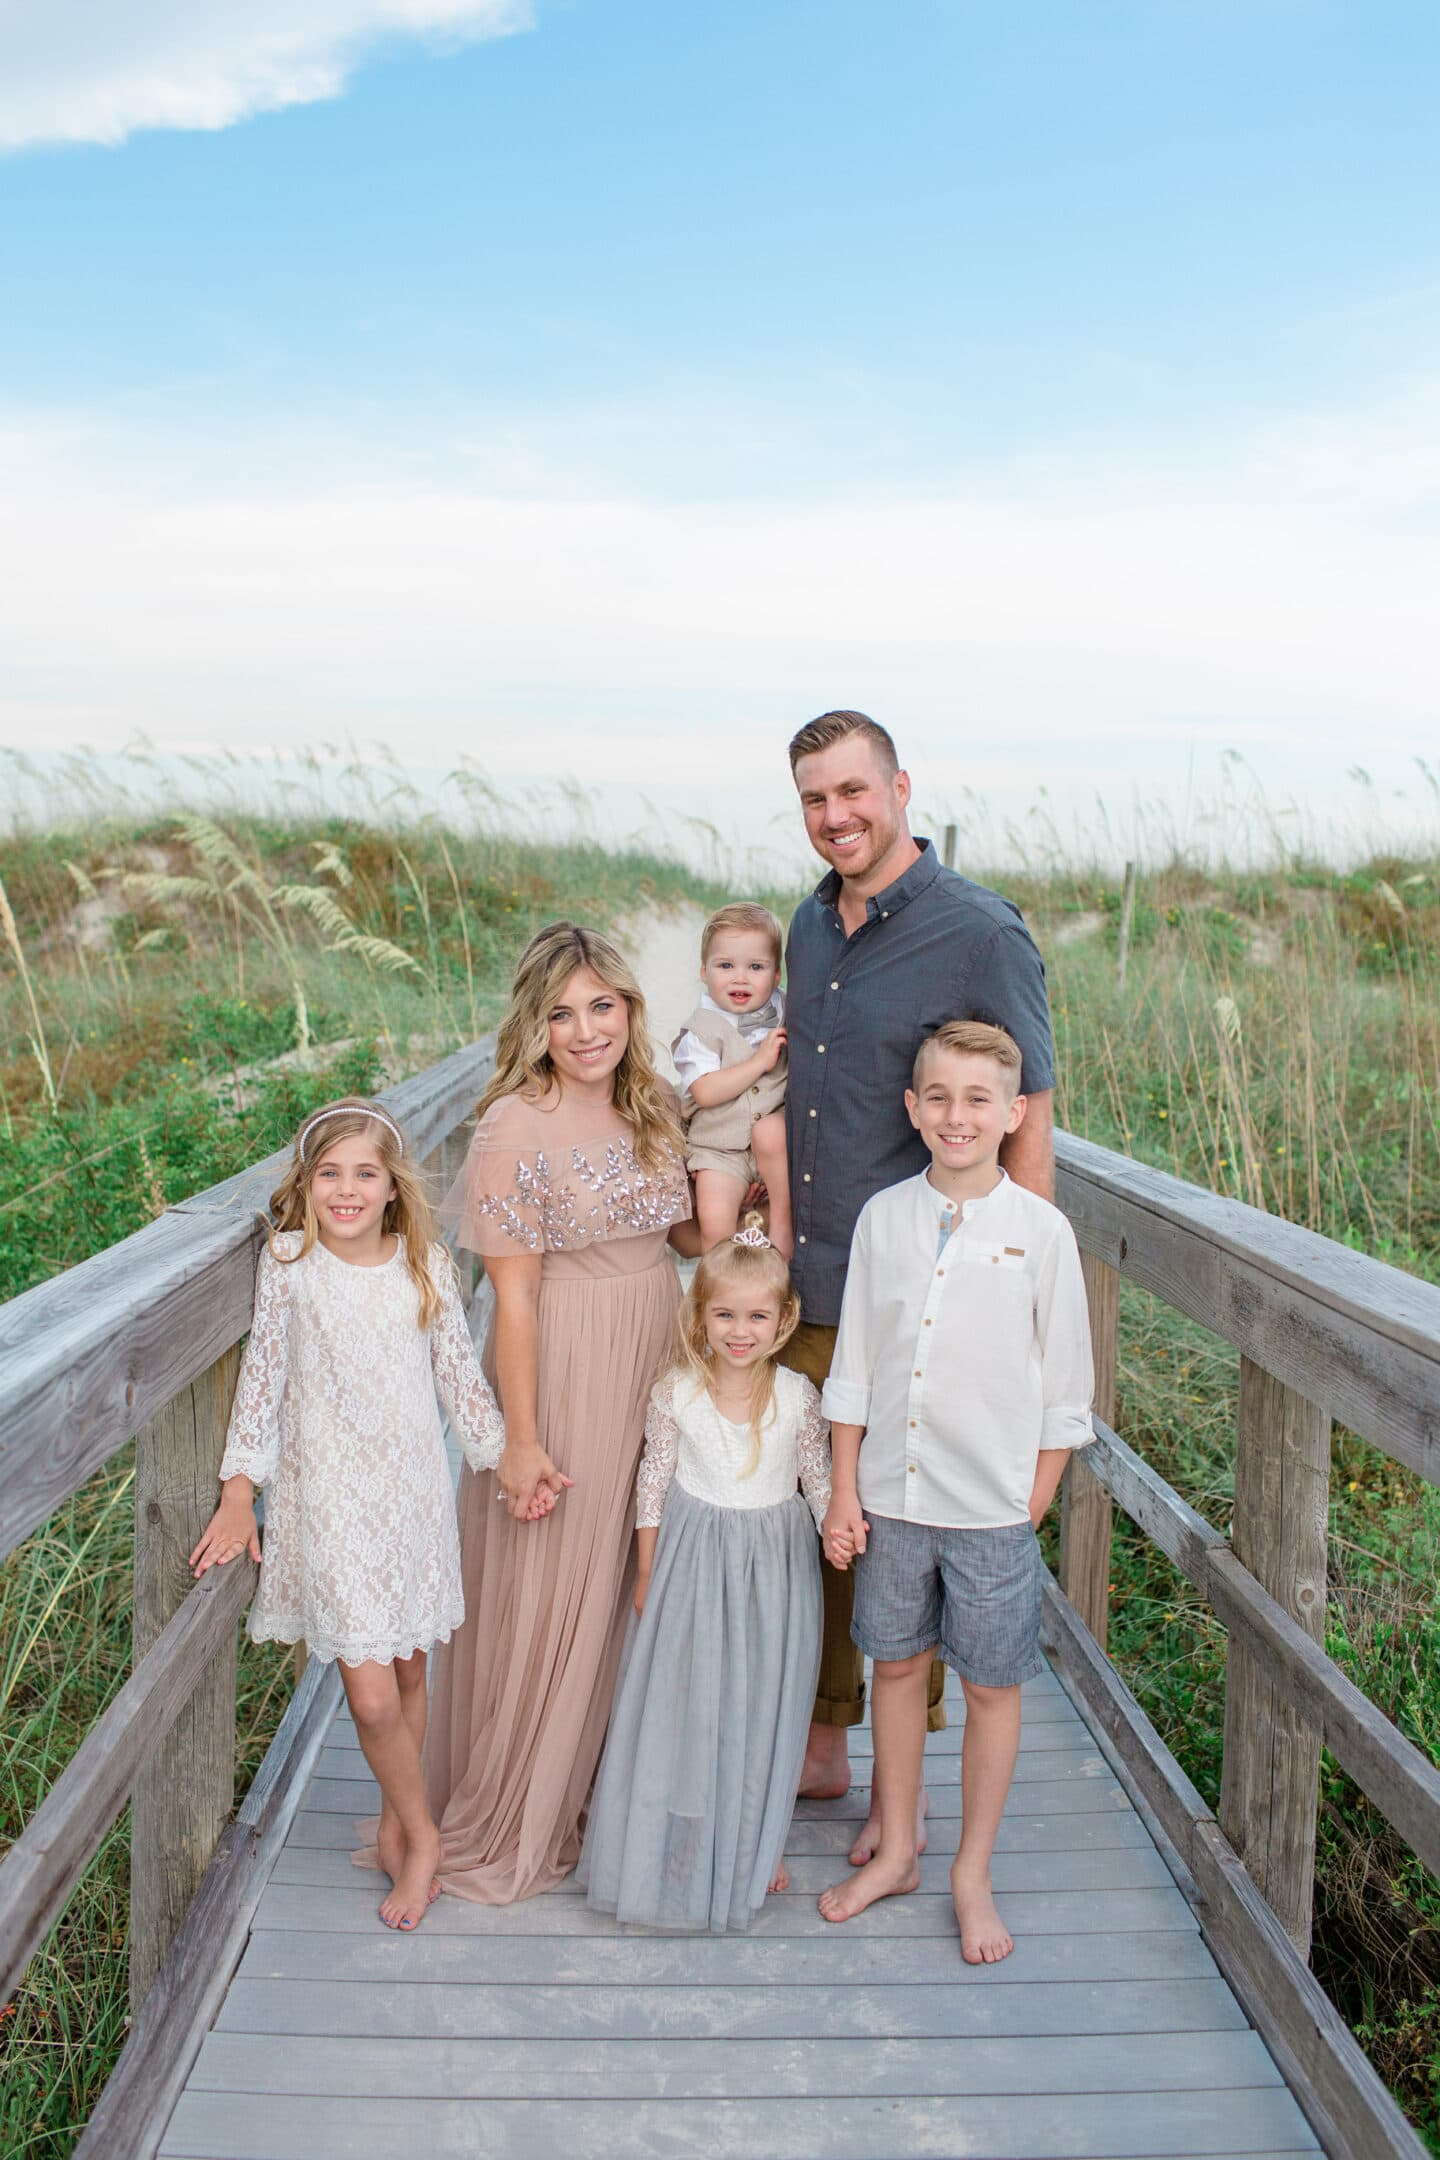 Family Photos July 2019 – St Augustine Beach